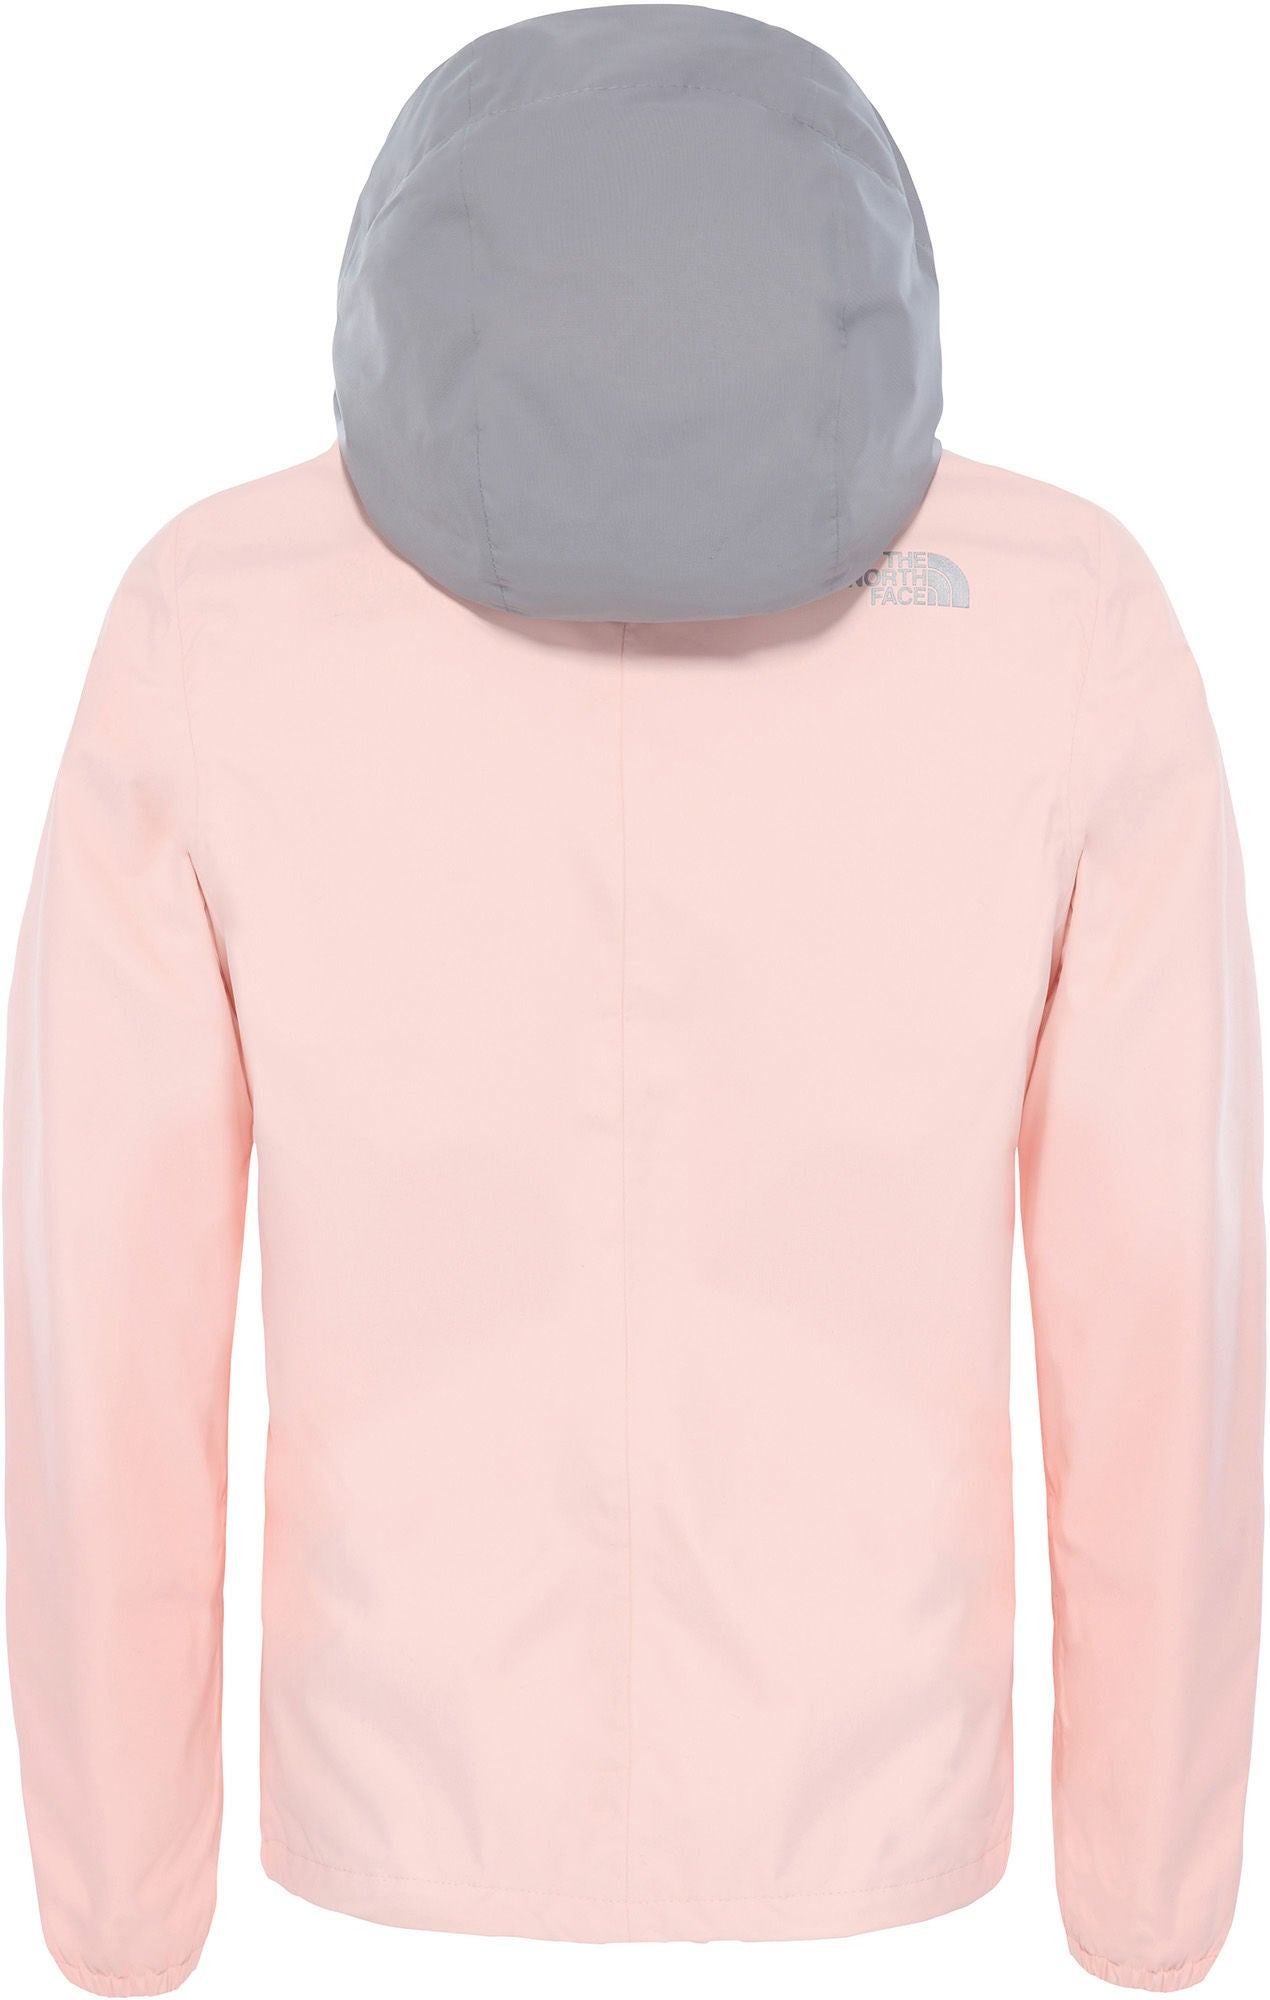 The North Face Resolve Reflective Jacka, Pink Salt